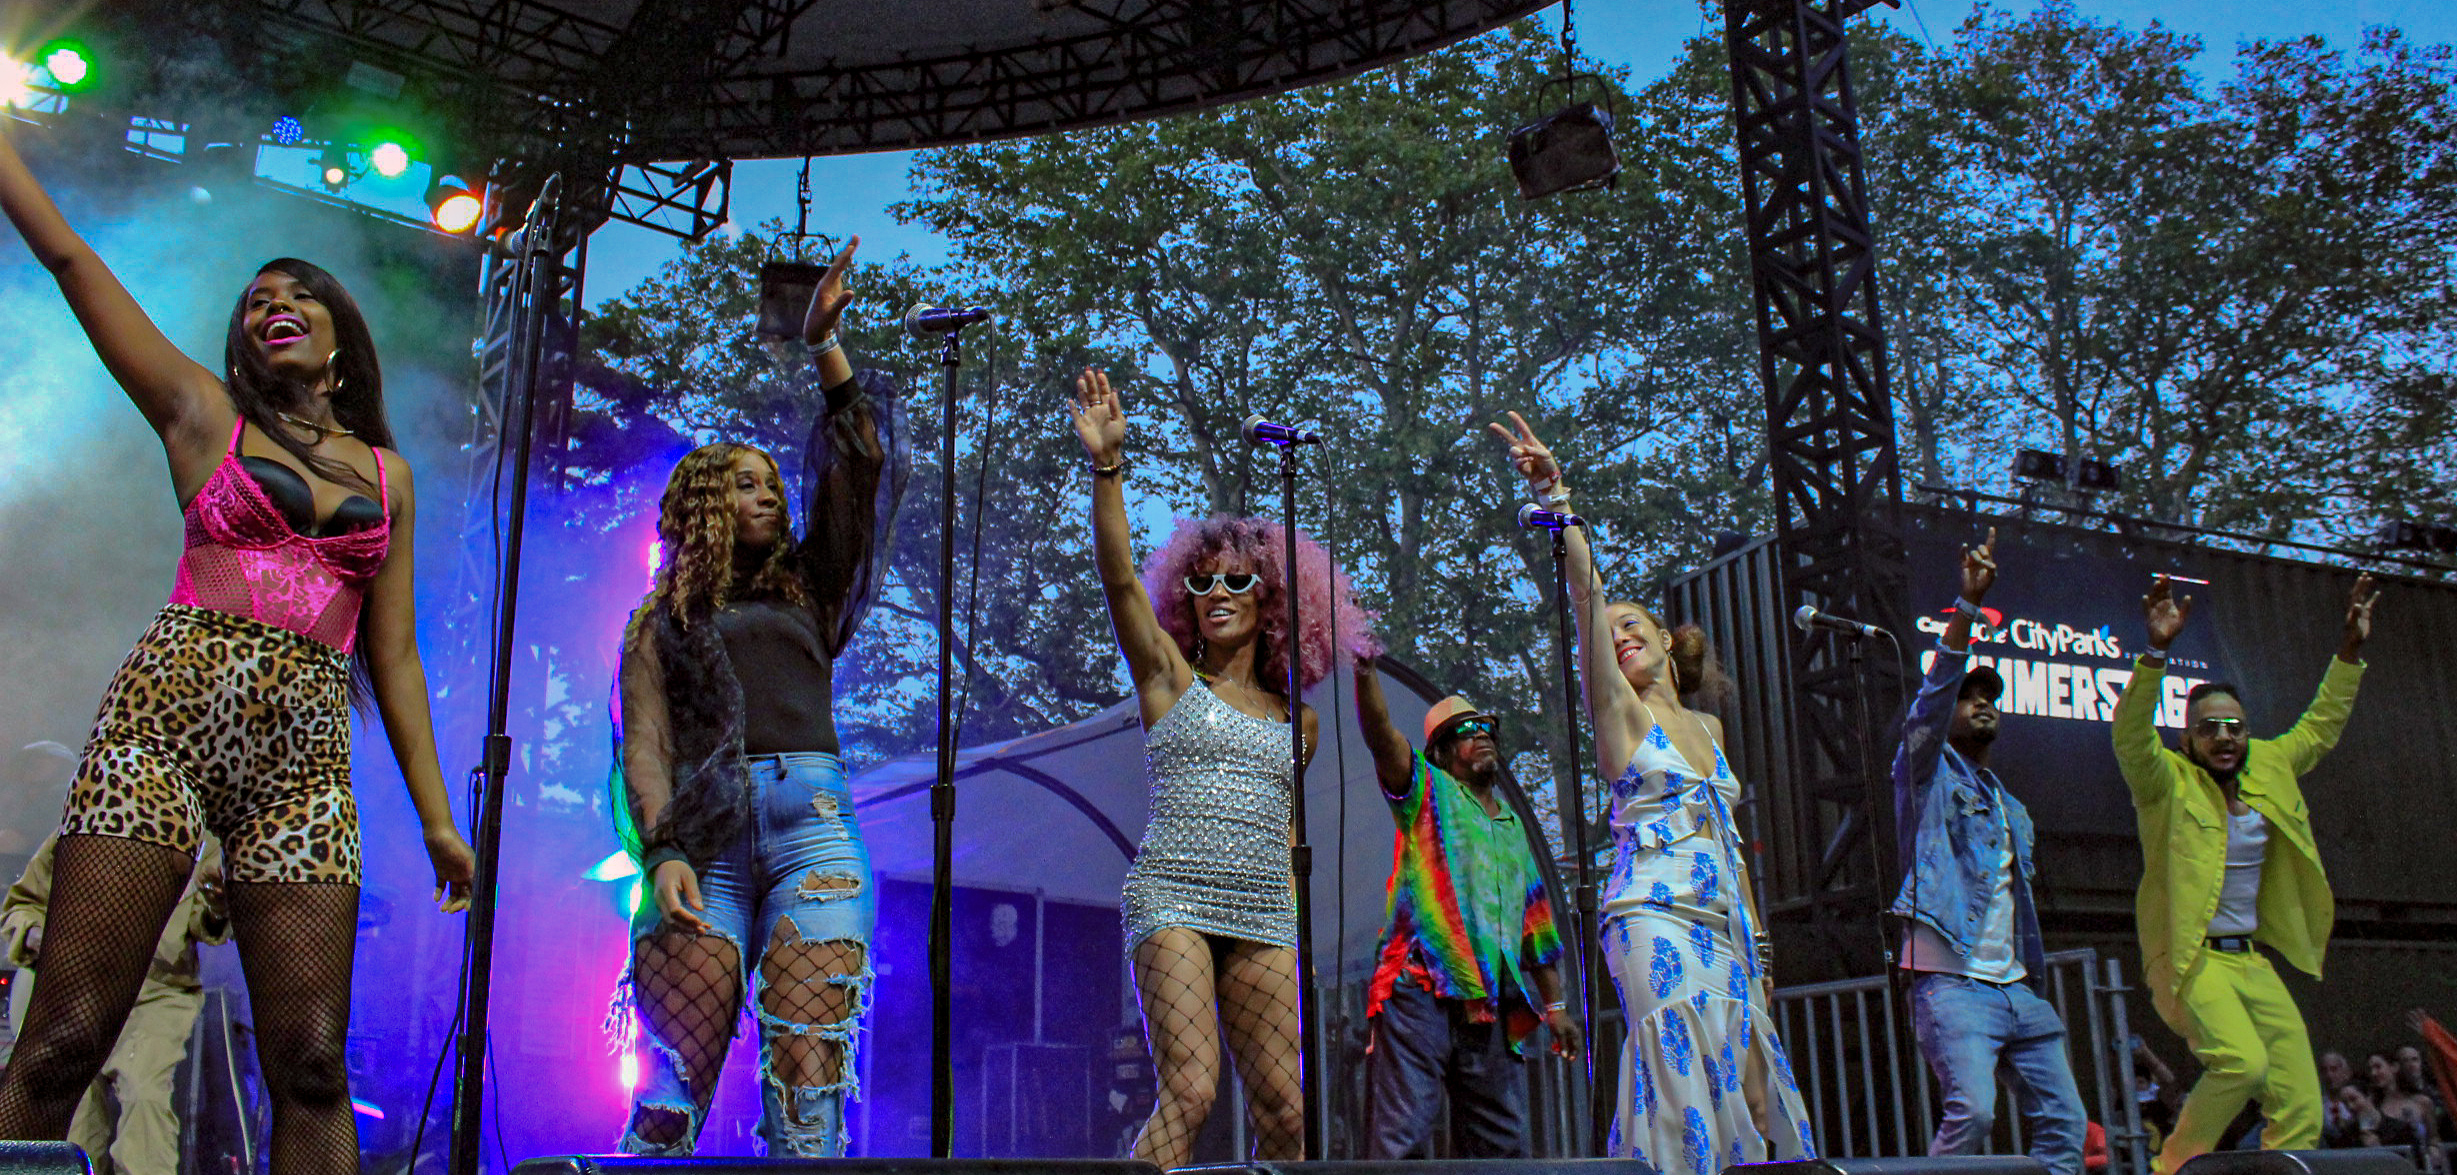 George Clinton Gathers The Best Of The Best For A Funky Throwdown In Central Park [Photos]